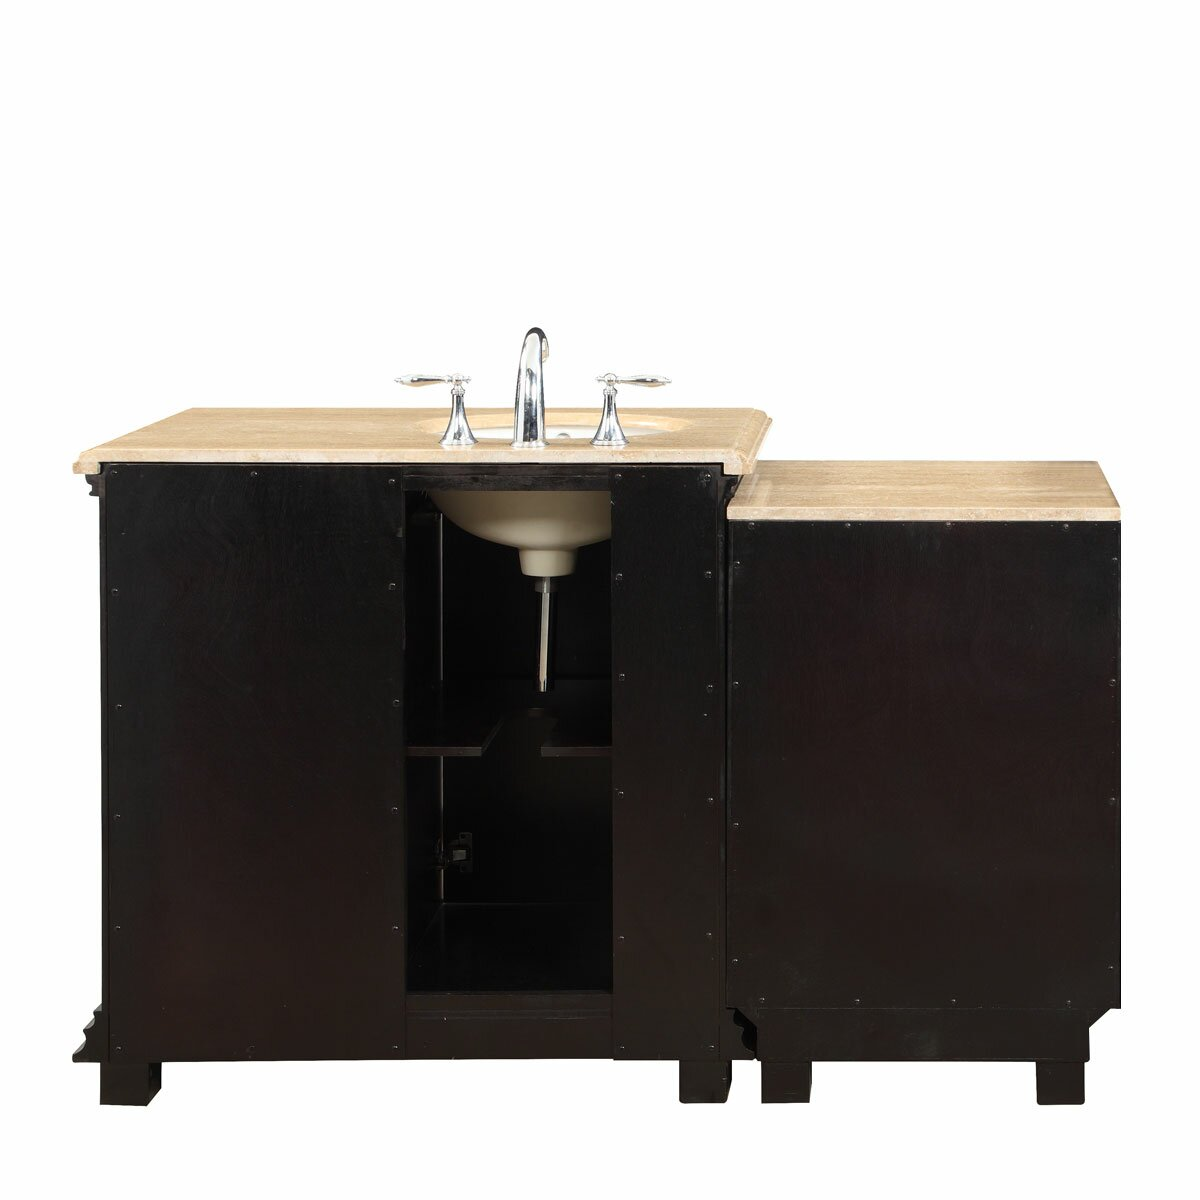 56 Single Bathroom Modular Vanity Set With Sink On Left Side Wayfair